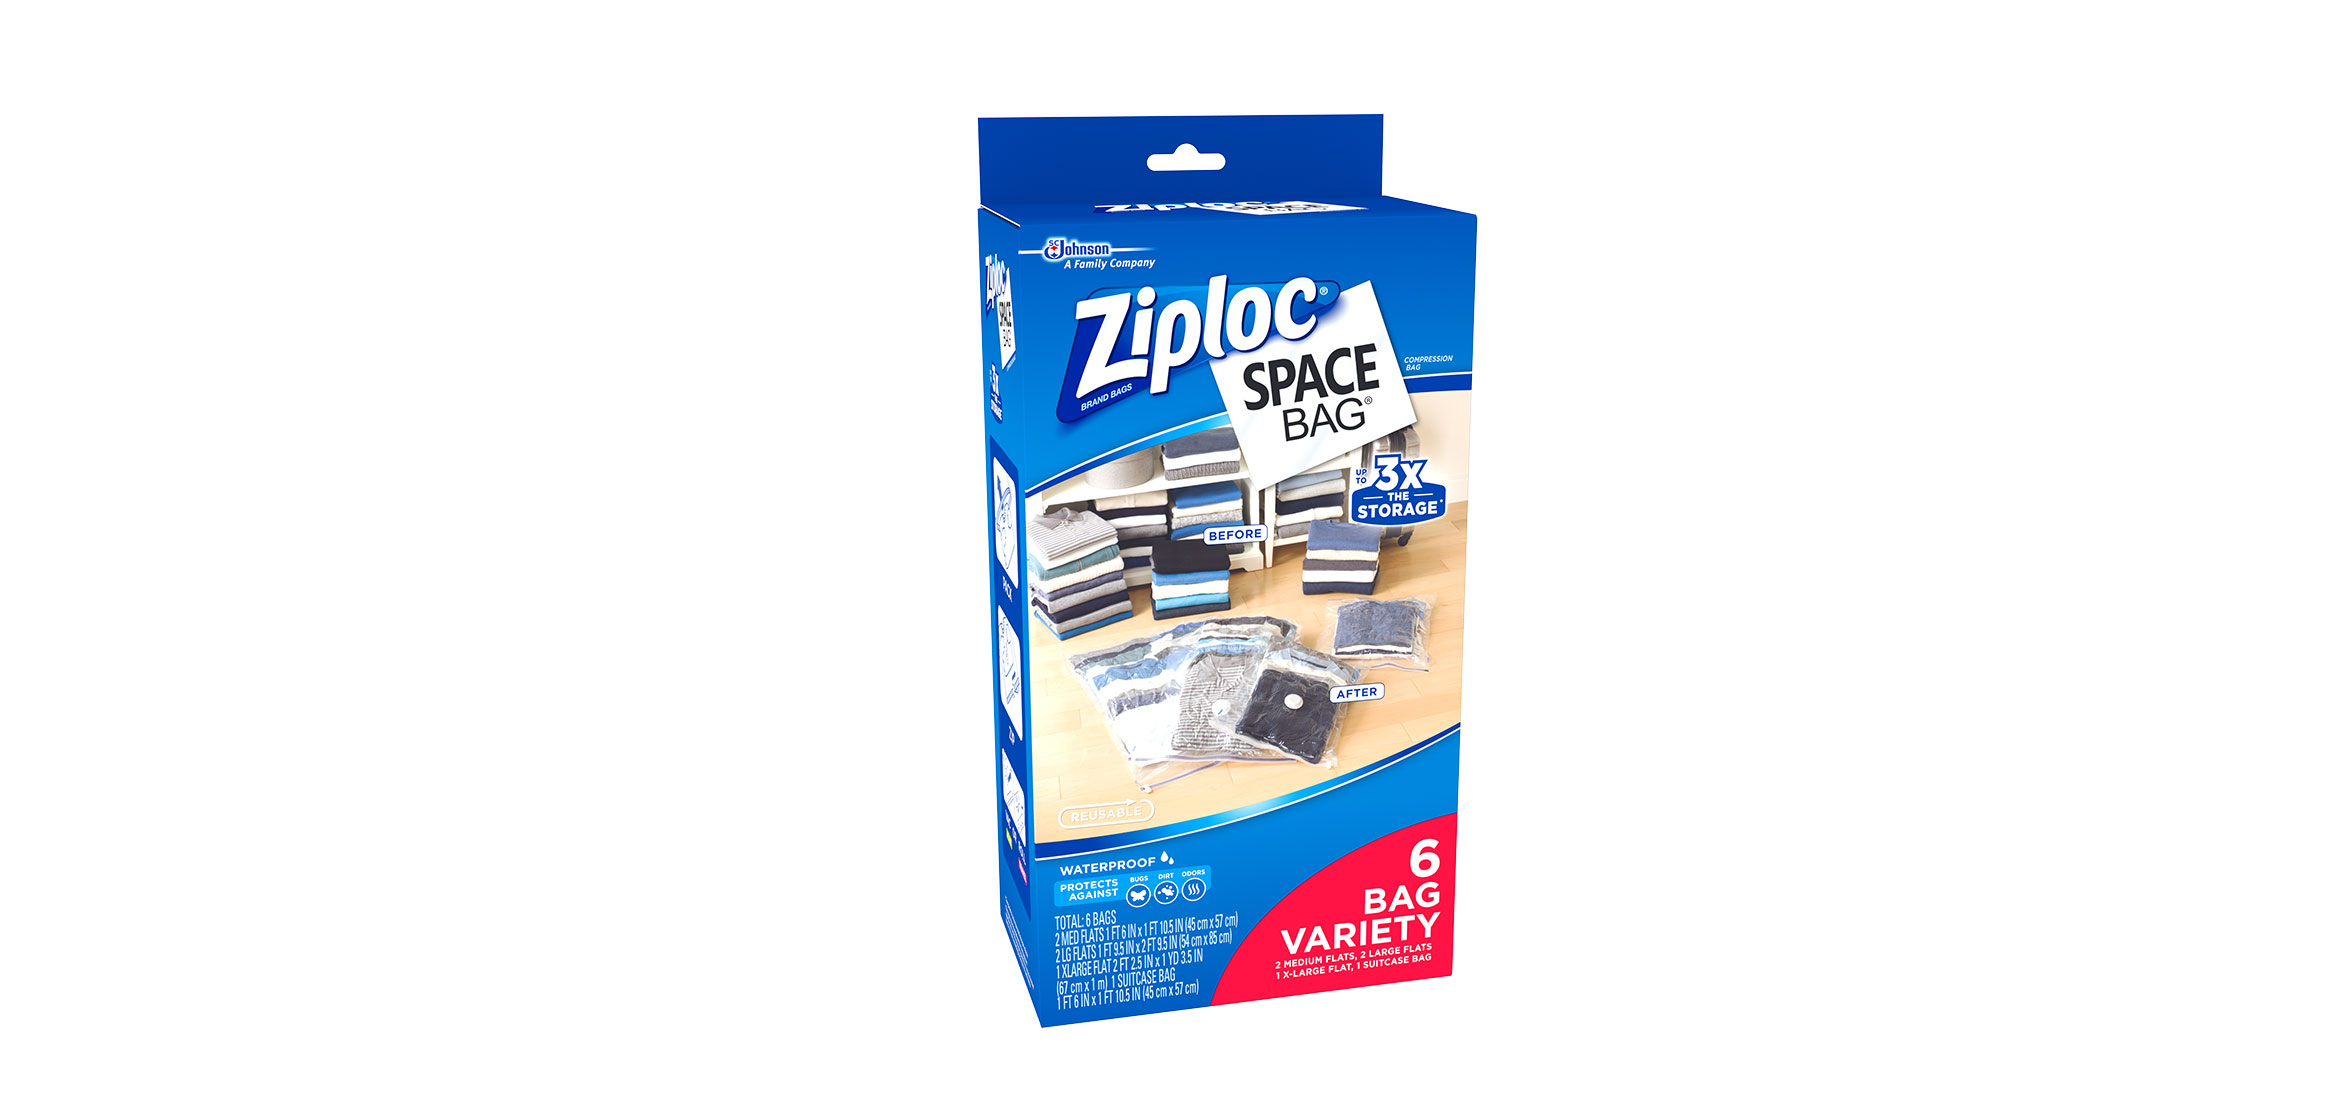 Flat Bag: 2 Medium, 2 Large,1 XL; 1 Space Cube Ziploc Space Bag Variety Pack 6 Count